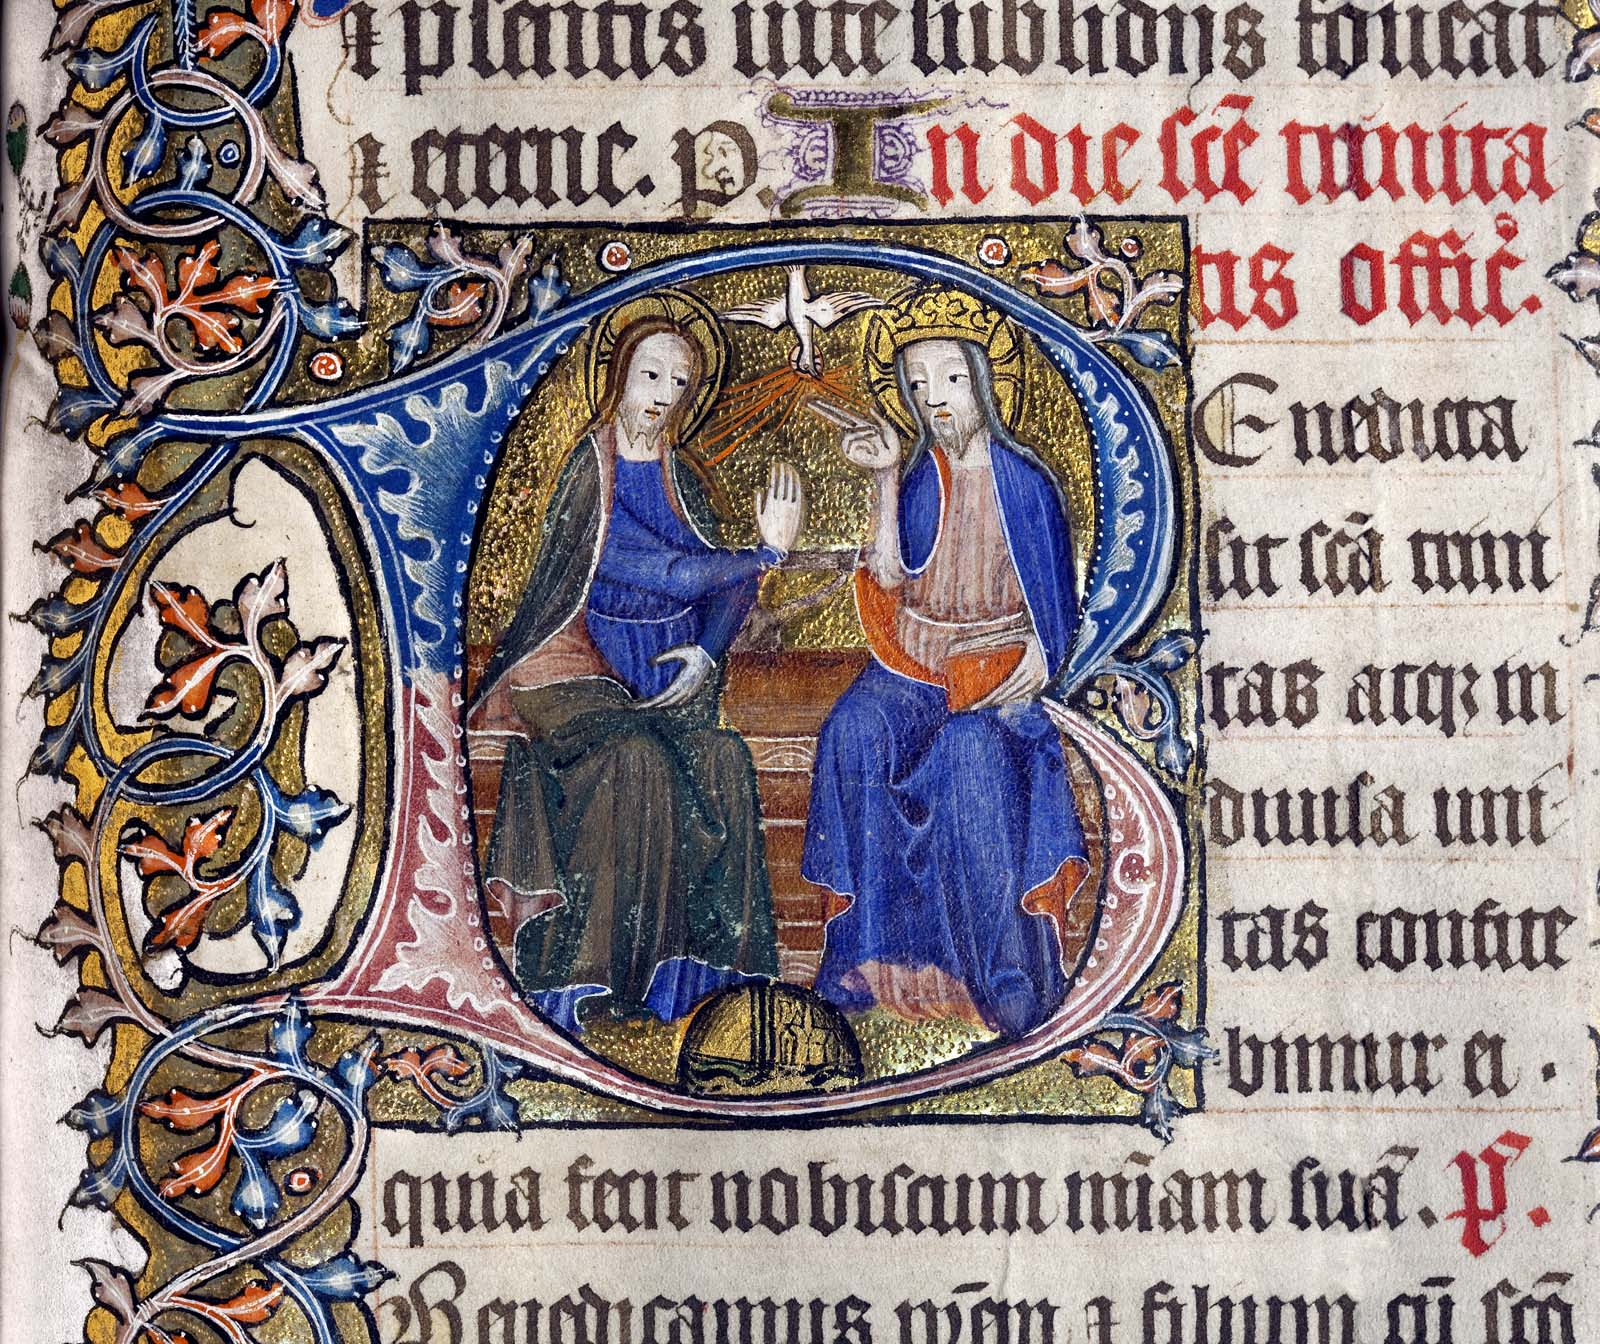 detail from an illuminated manuscript showing two figures within a scrollwork background